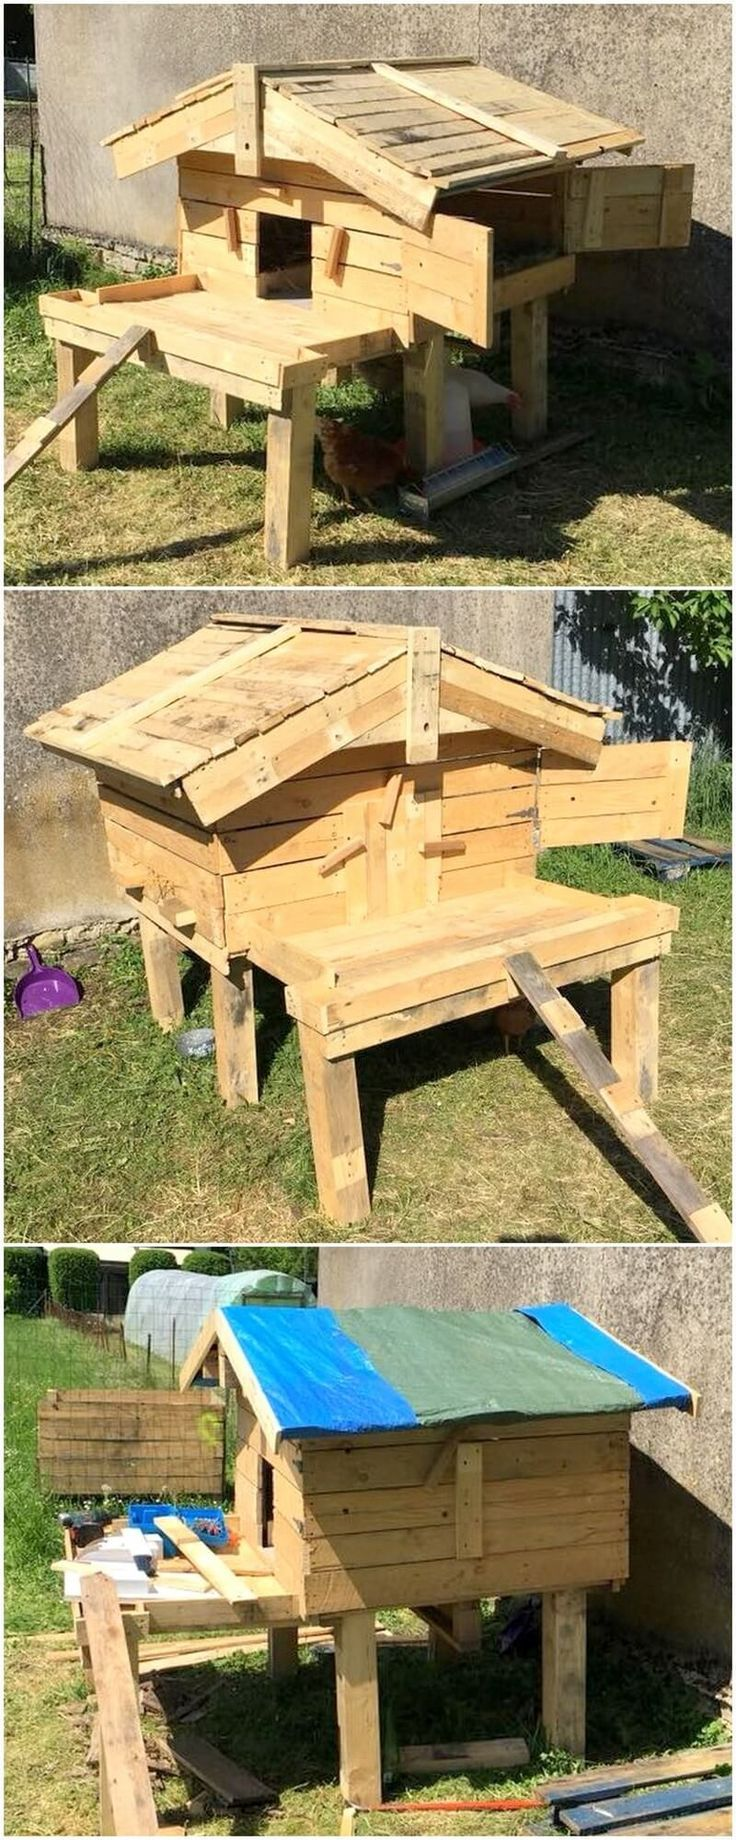 Amazing Ideas For Wooden Pallets Projects Pallet Projects In